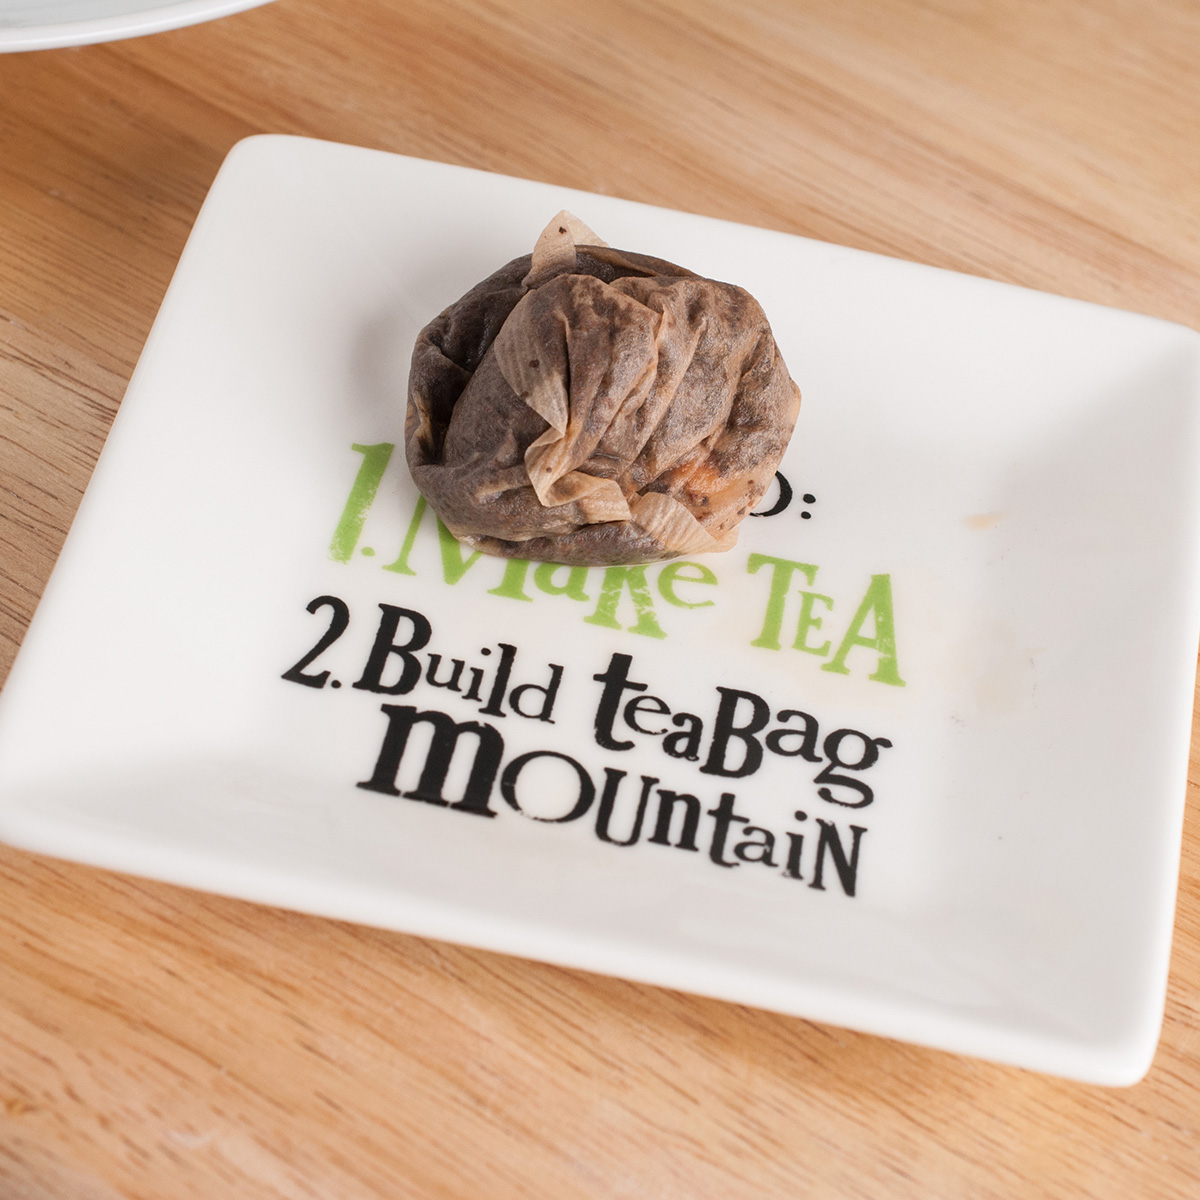 Tea Bag Mountain Tea Bag Tray | Kitchen Gifts By ...